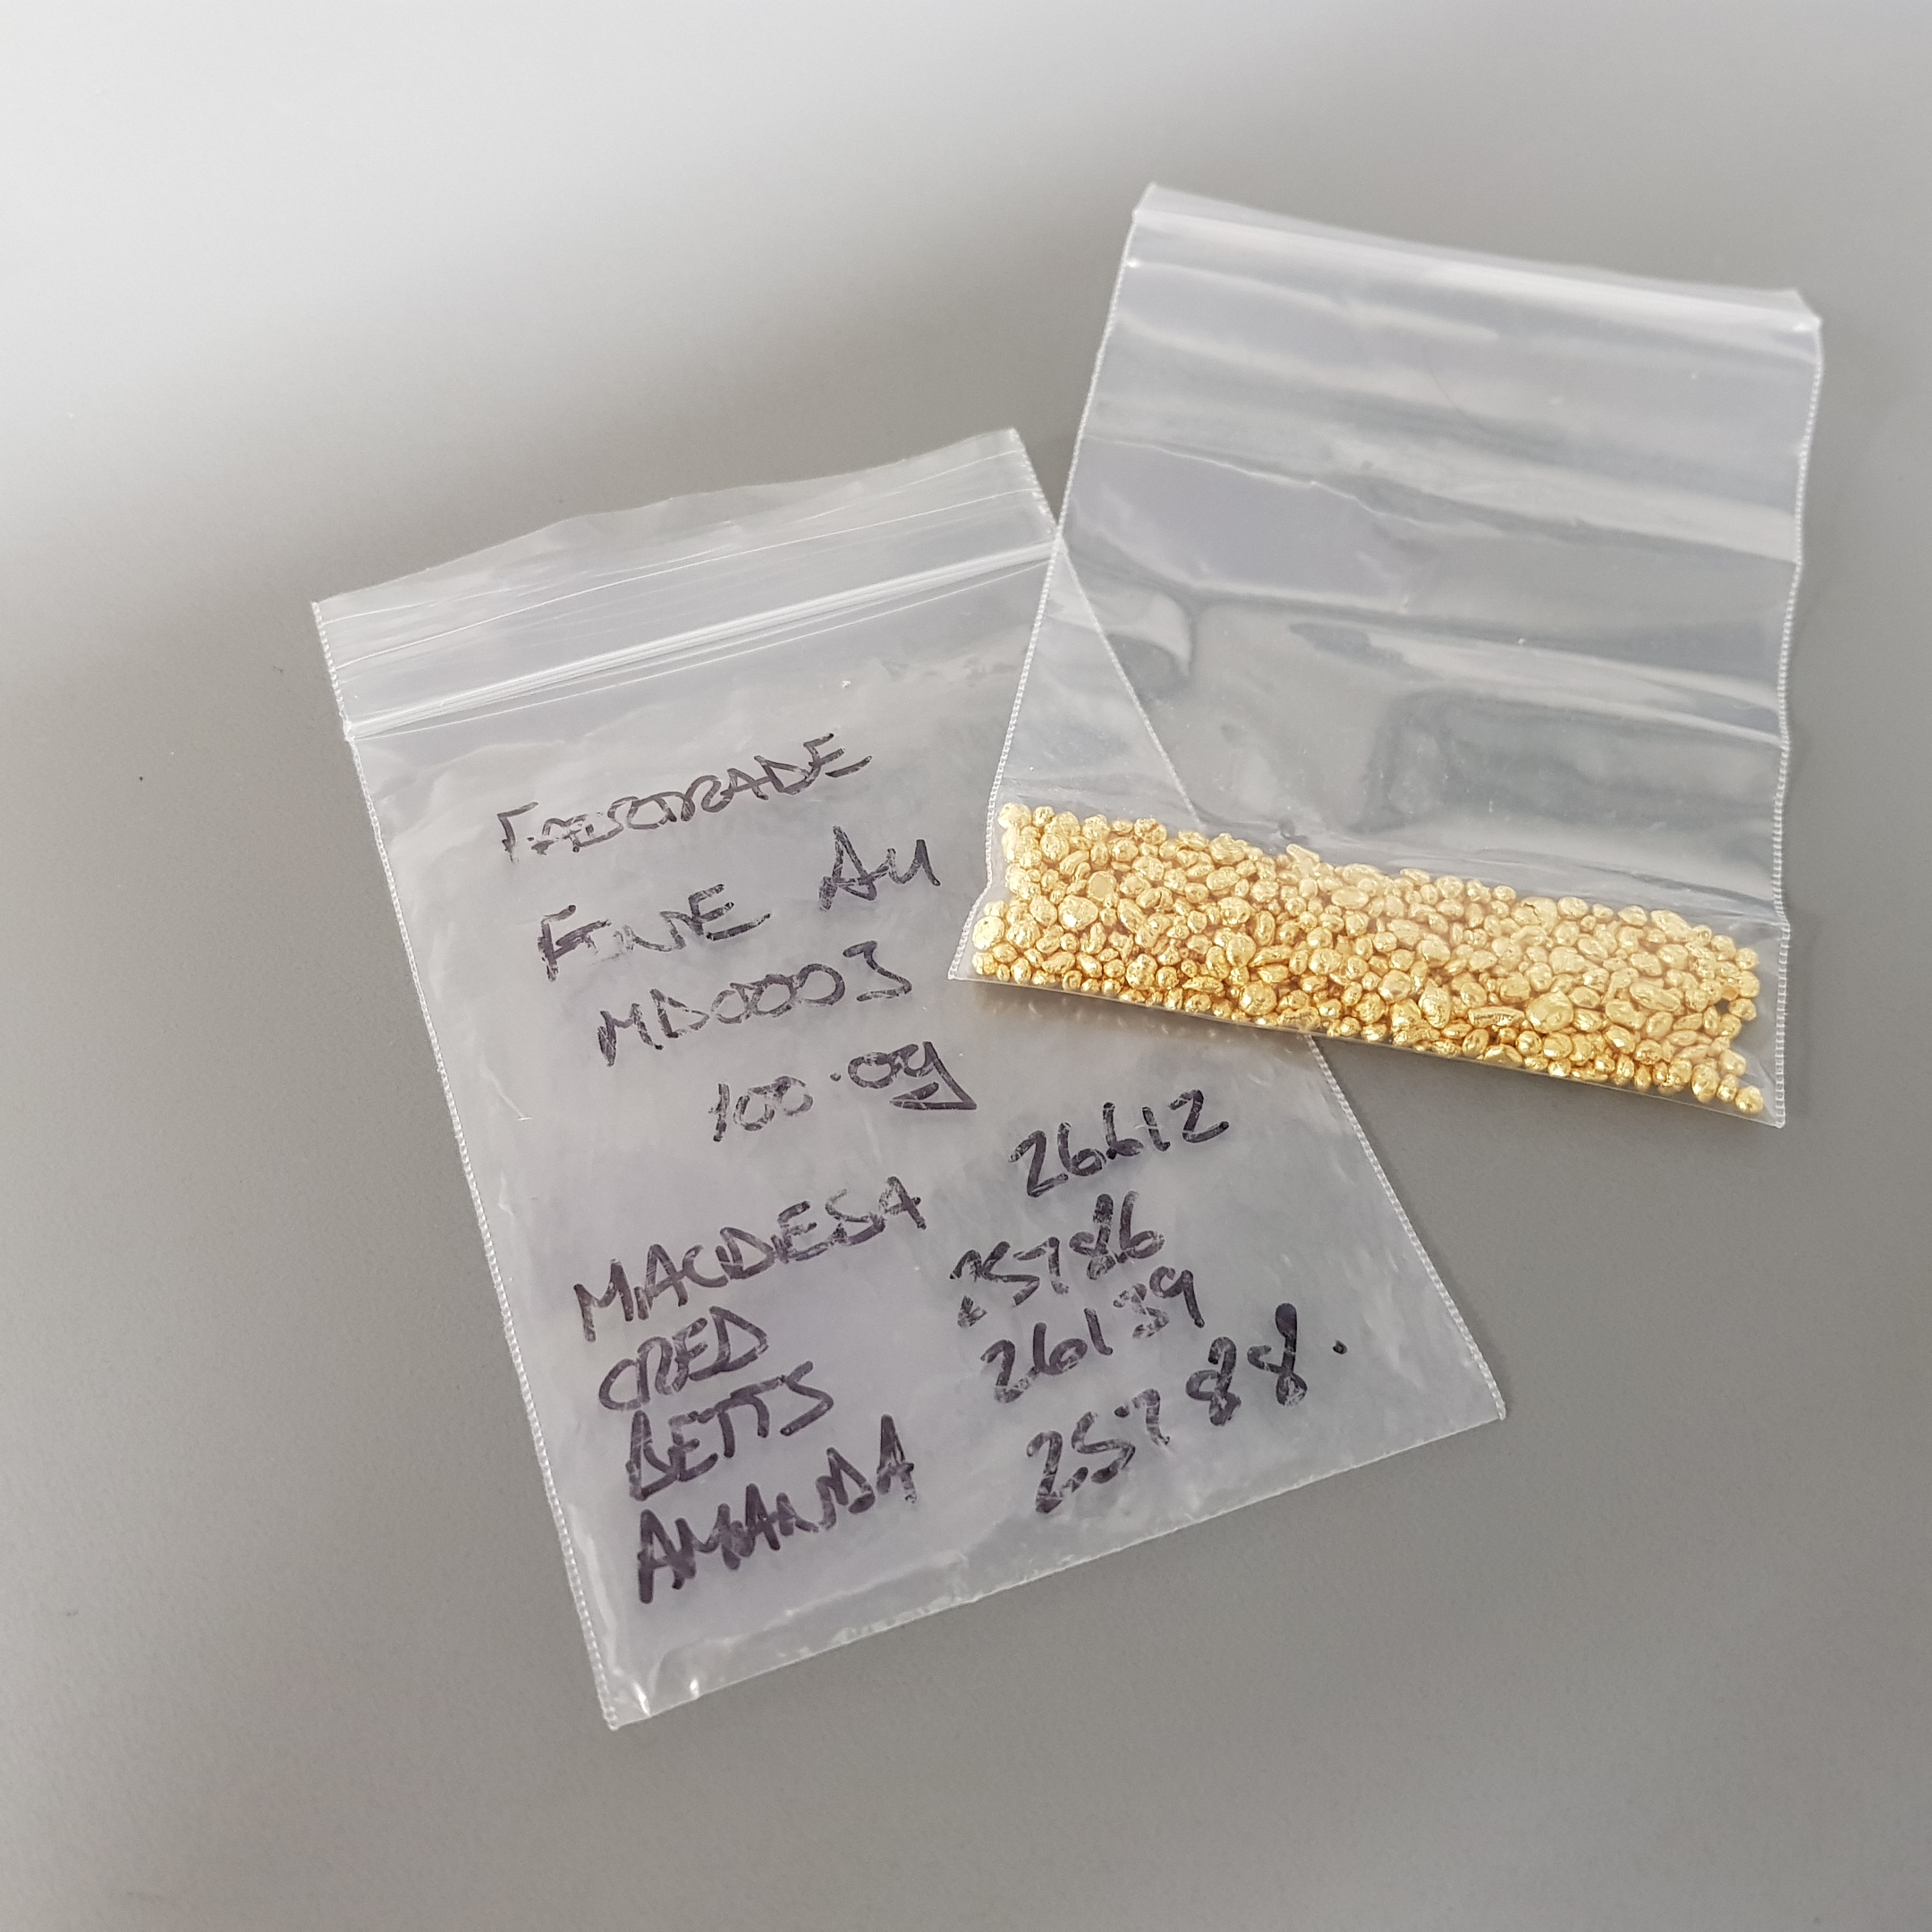 Pure gold grains in a plastic baggie on a grey background.